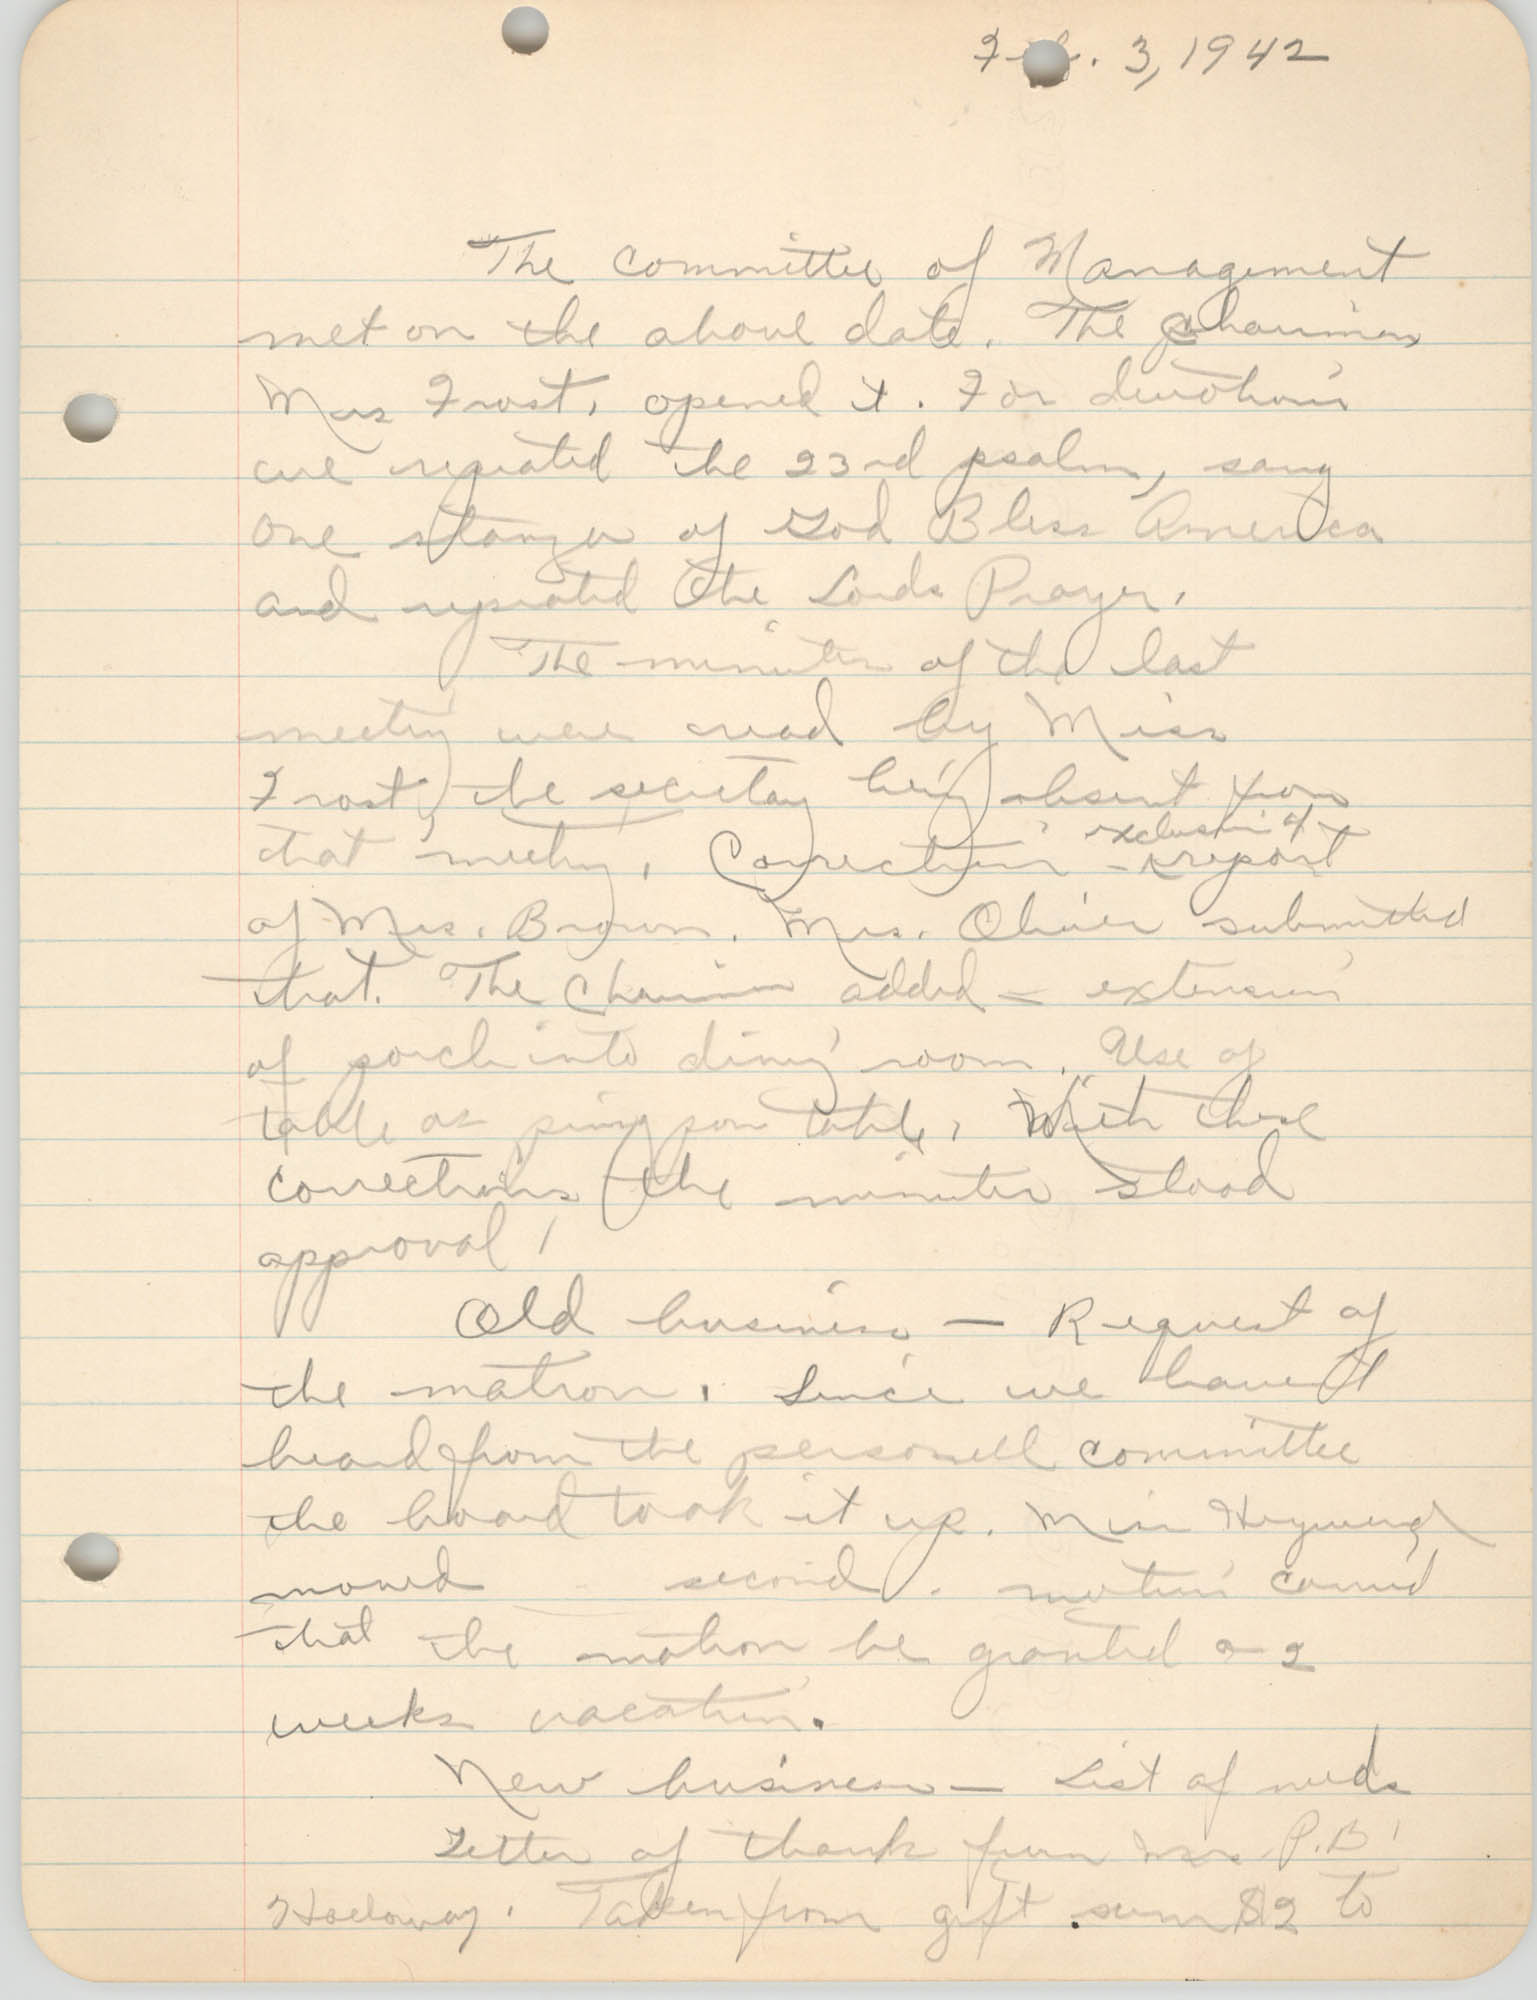 Minutes to the Committee of Management, Coming Street Y.W.C.A., February 3, 1942